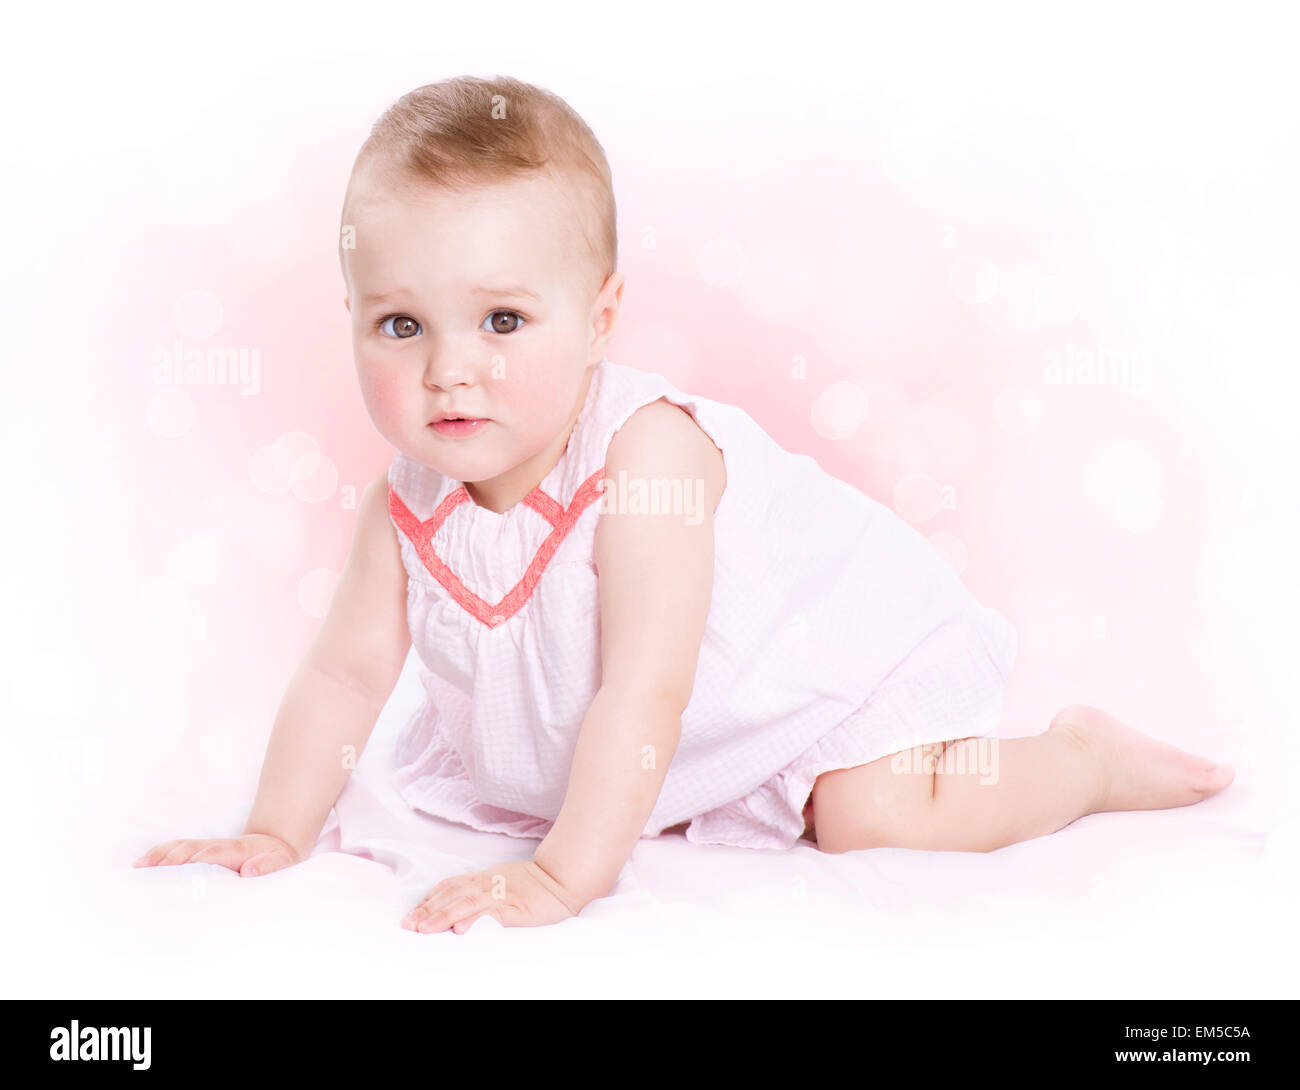 cute baby small girl wearing stock photos & cute baby small girl